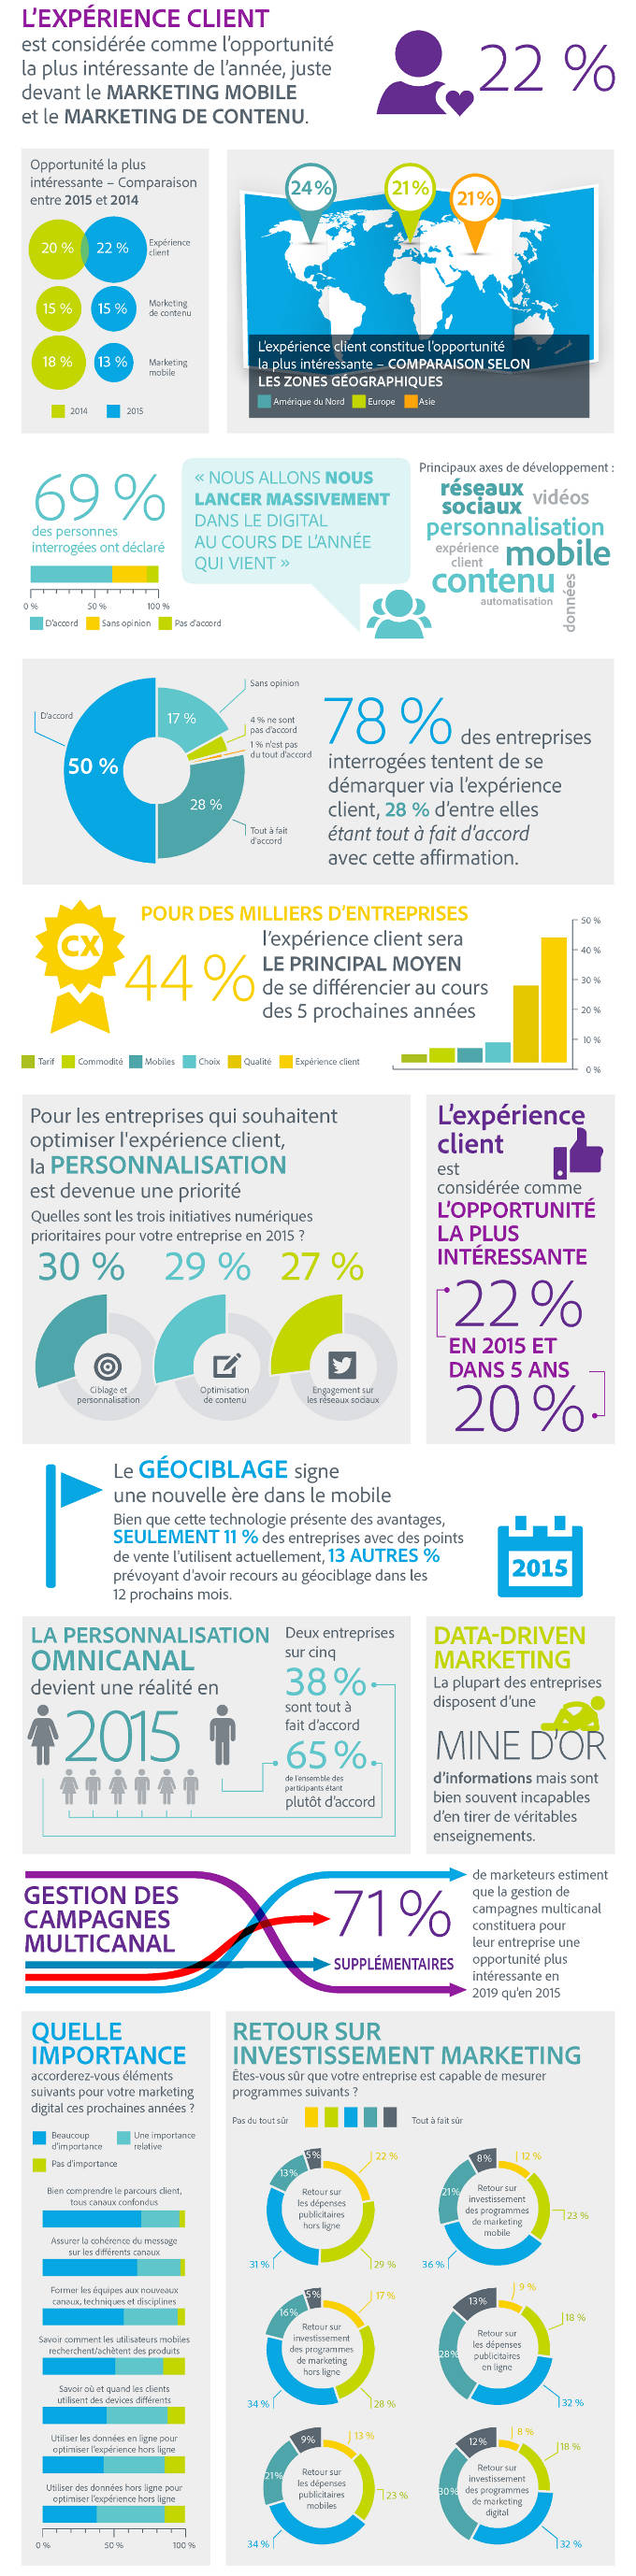 tendances-digital-adobe-2015